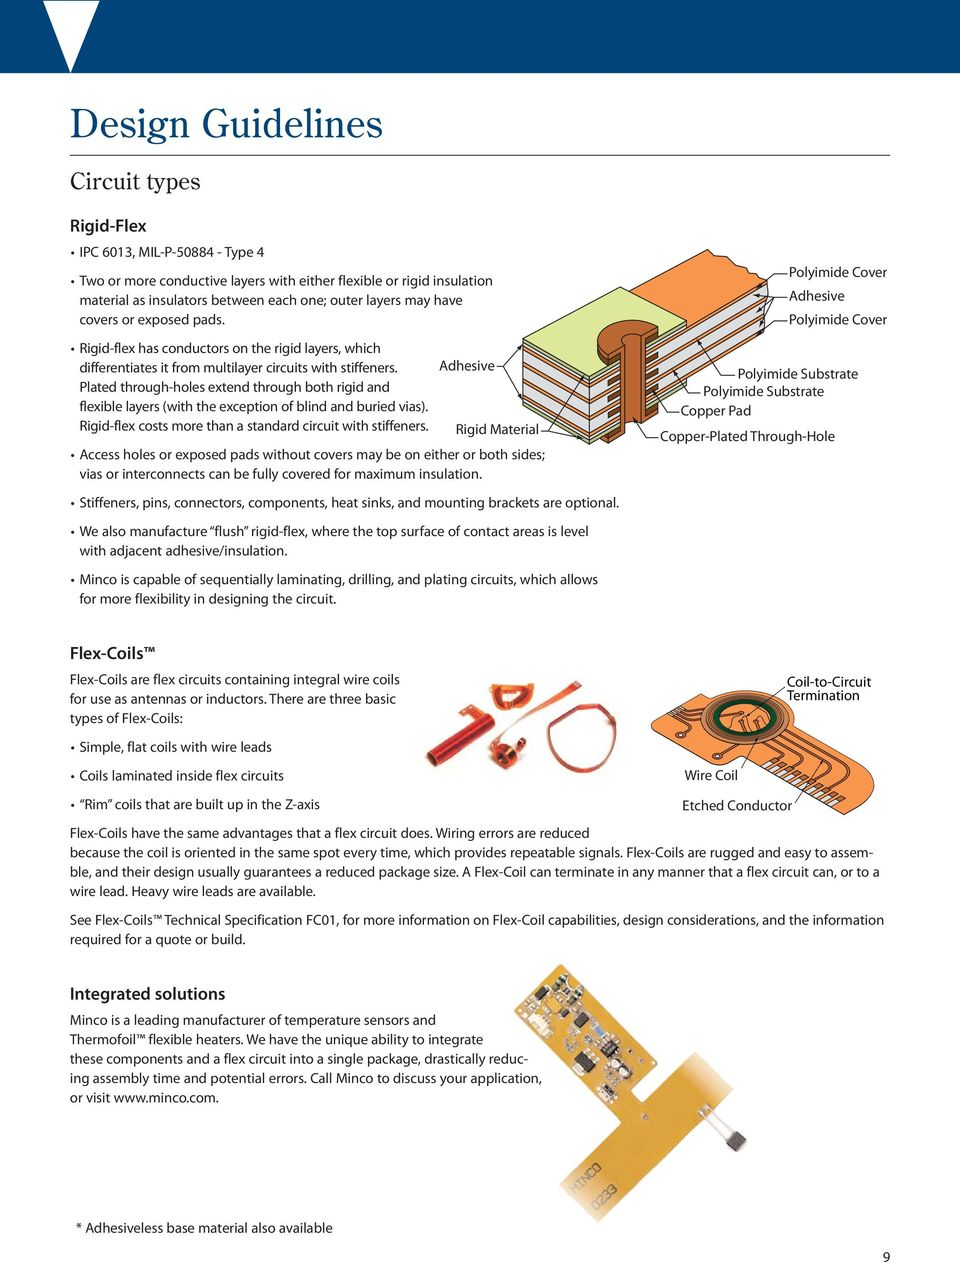 Flex Circuit Design Guide Pdf Layer Polimide Flexible Printed Board Manufacturers Pcb Custom Plated Through Holes Extend Both Rigid And Layers With The Exception Of